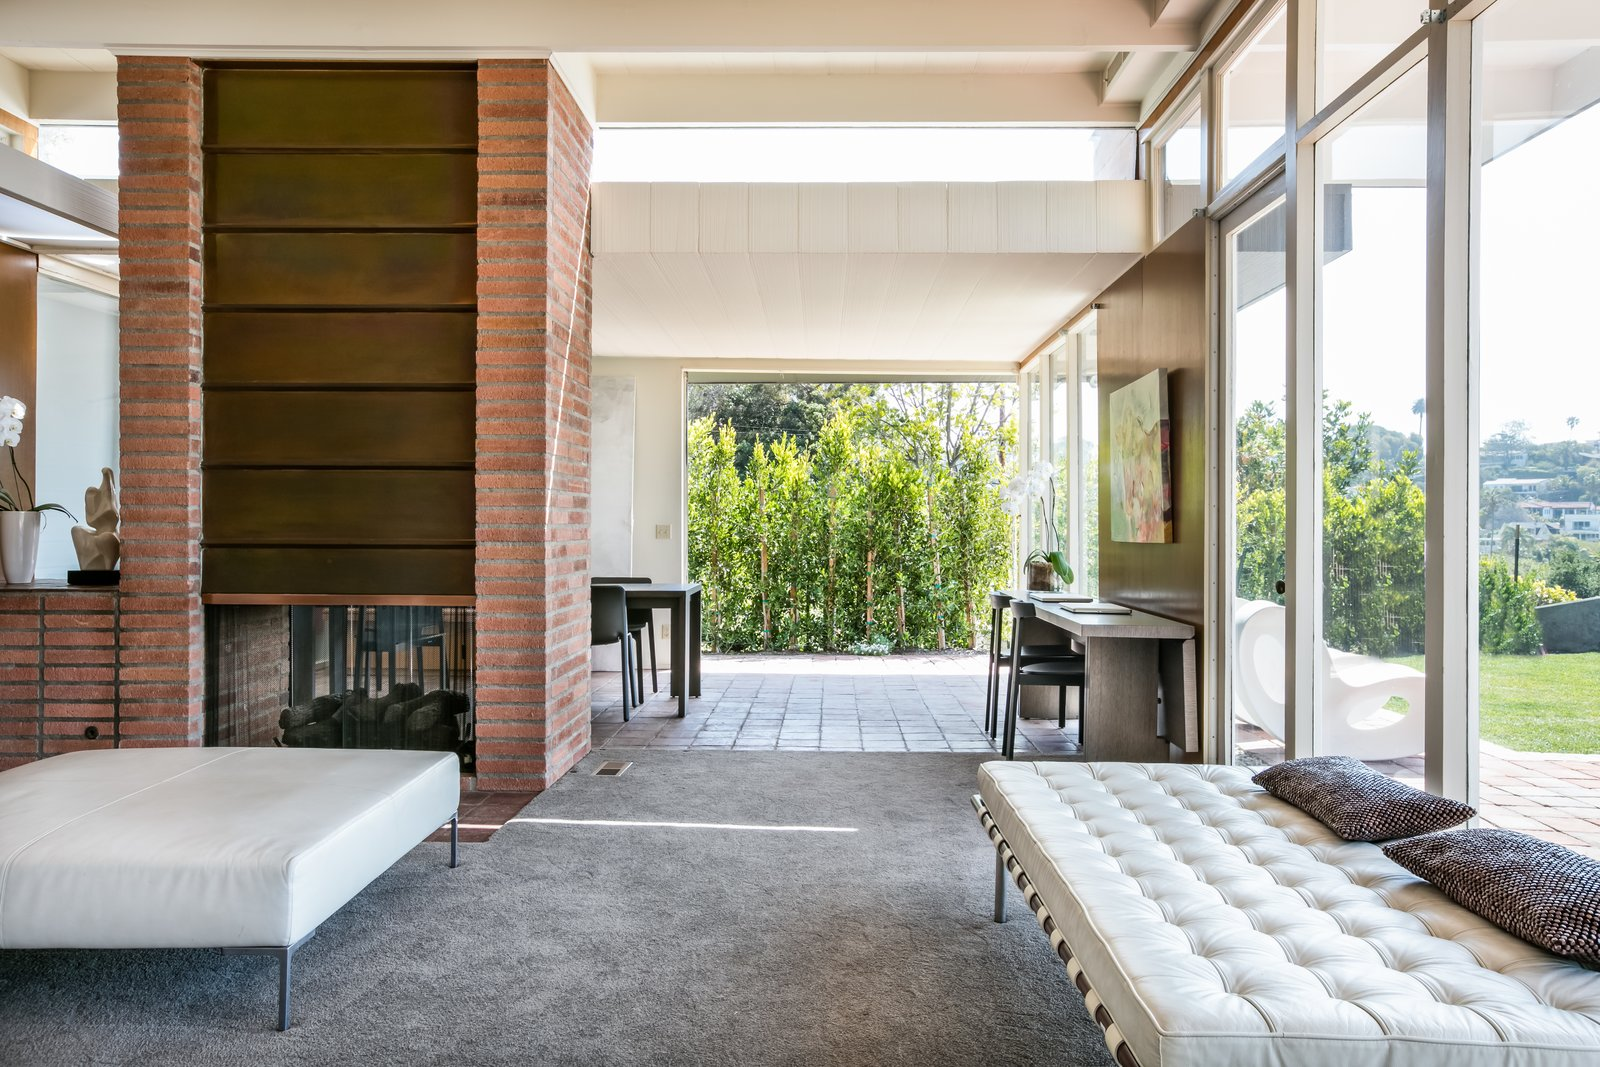 Living, Ottomans, Two-Sided, Table, Wood Burning, Carpet, and Bench The high ceilings were designed to accommodate clerestory windows.  Living Table Two-Sided Photos from Case Study House #18 in L.A. Hits the Market at $10M and Includes Plans From Tom Kundig